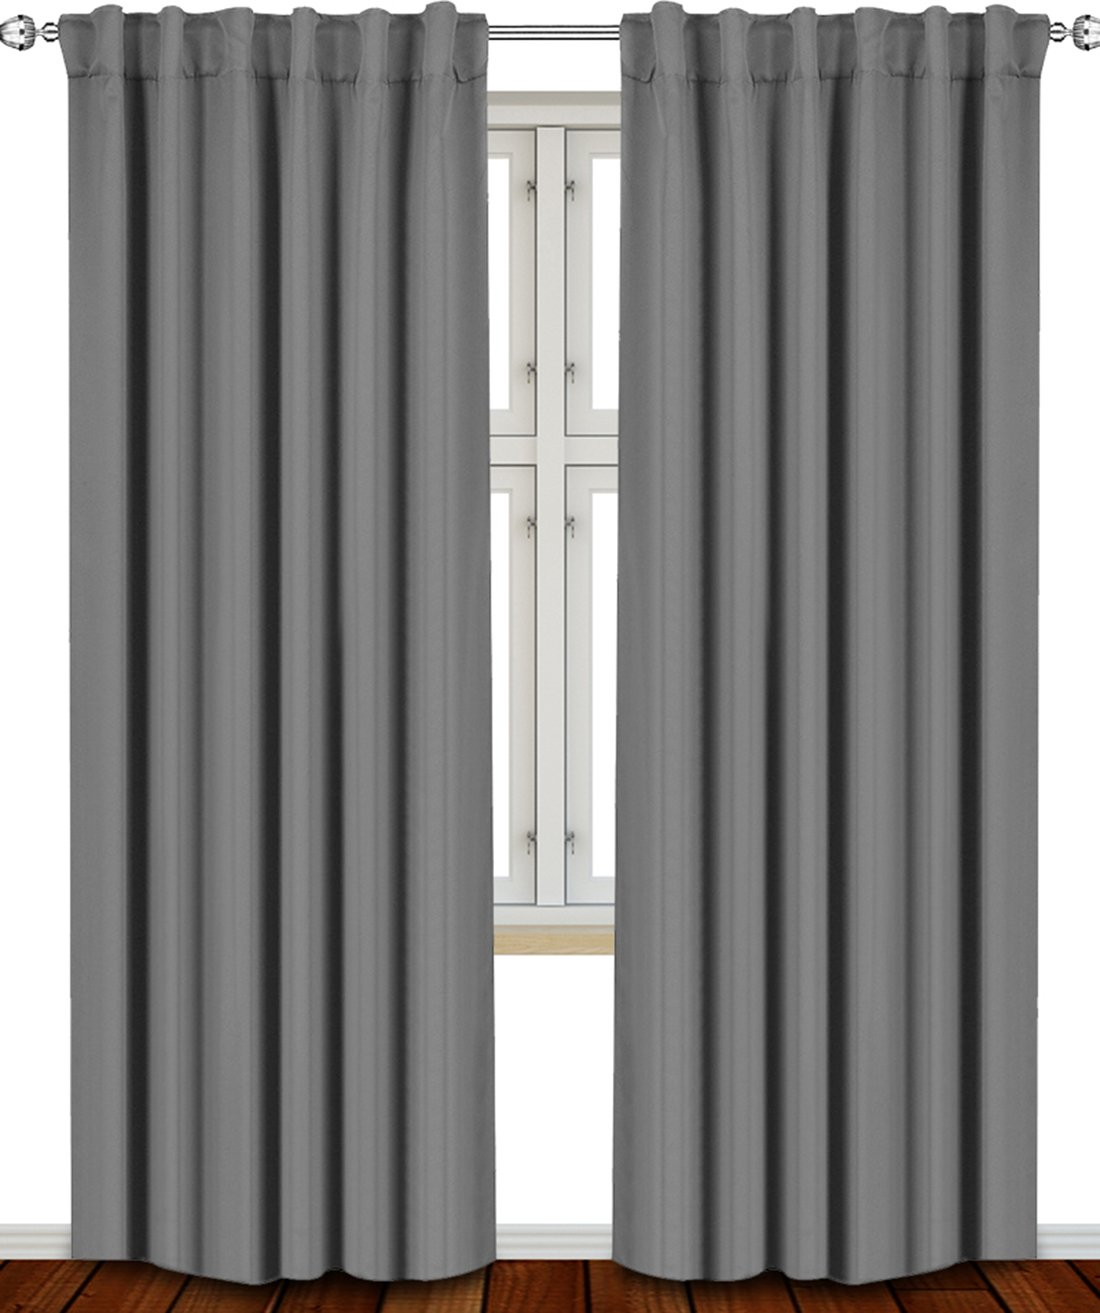 Blackout Room Darkening Curtains Window Panel Drapes Grey - 2 Panel Set 52x84 Inch-By Utopia Bedding